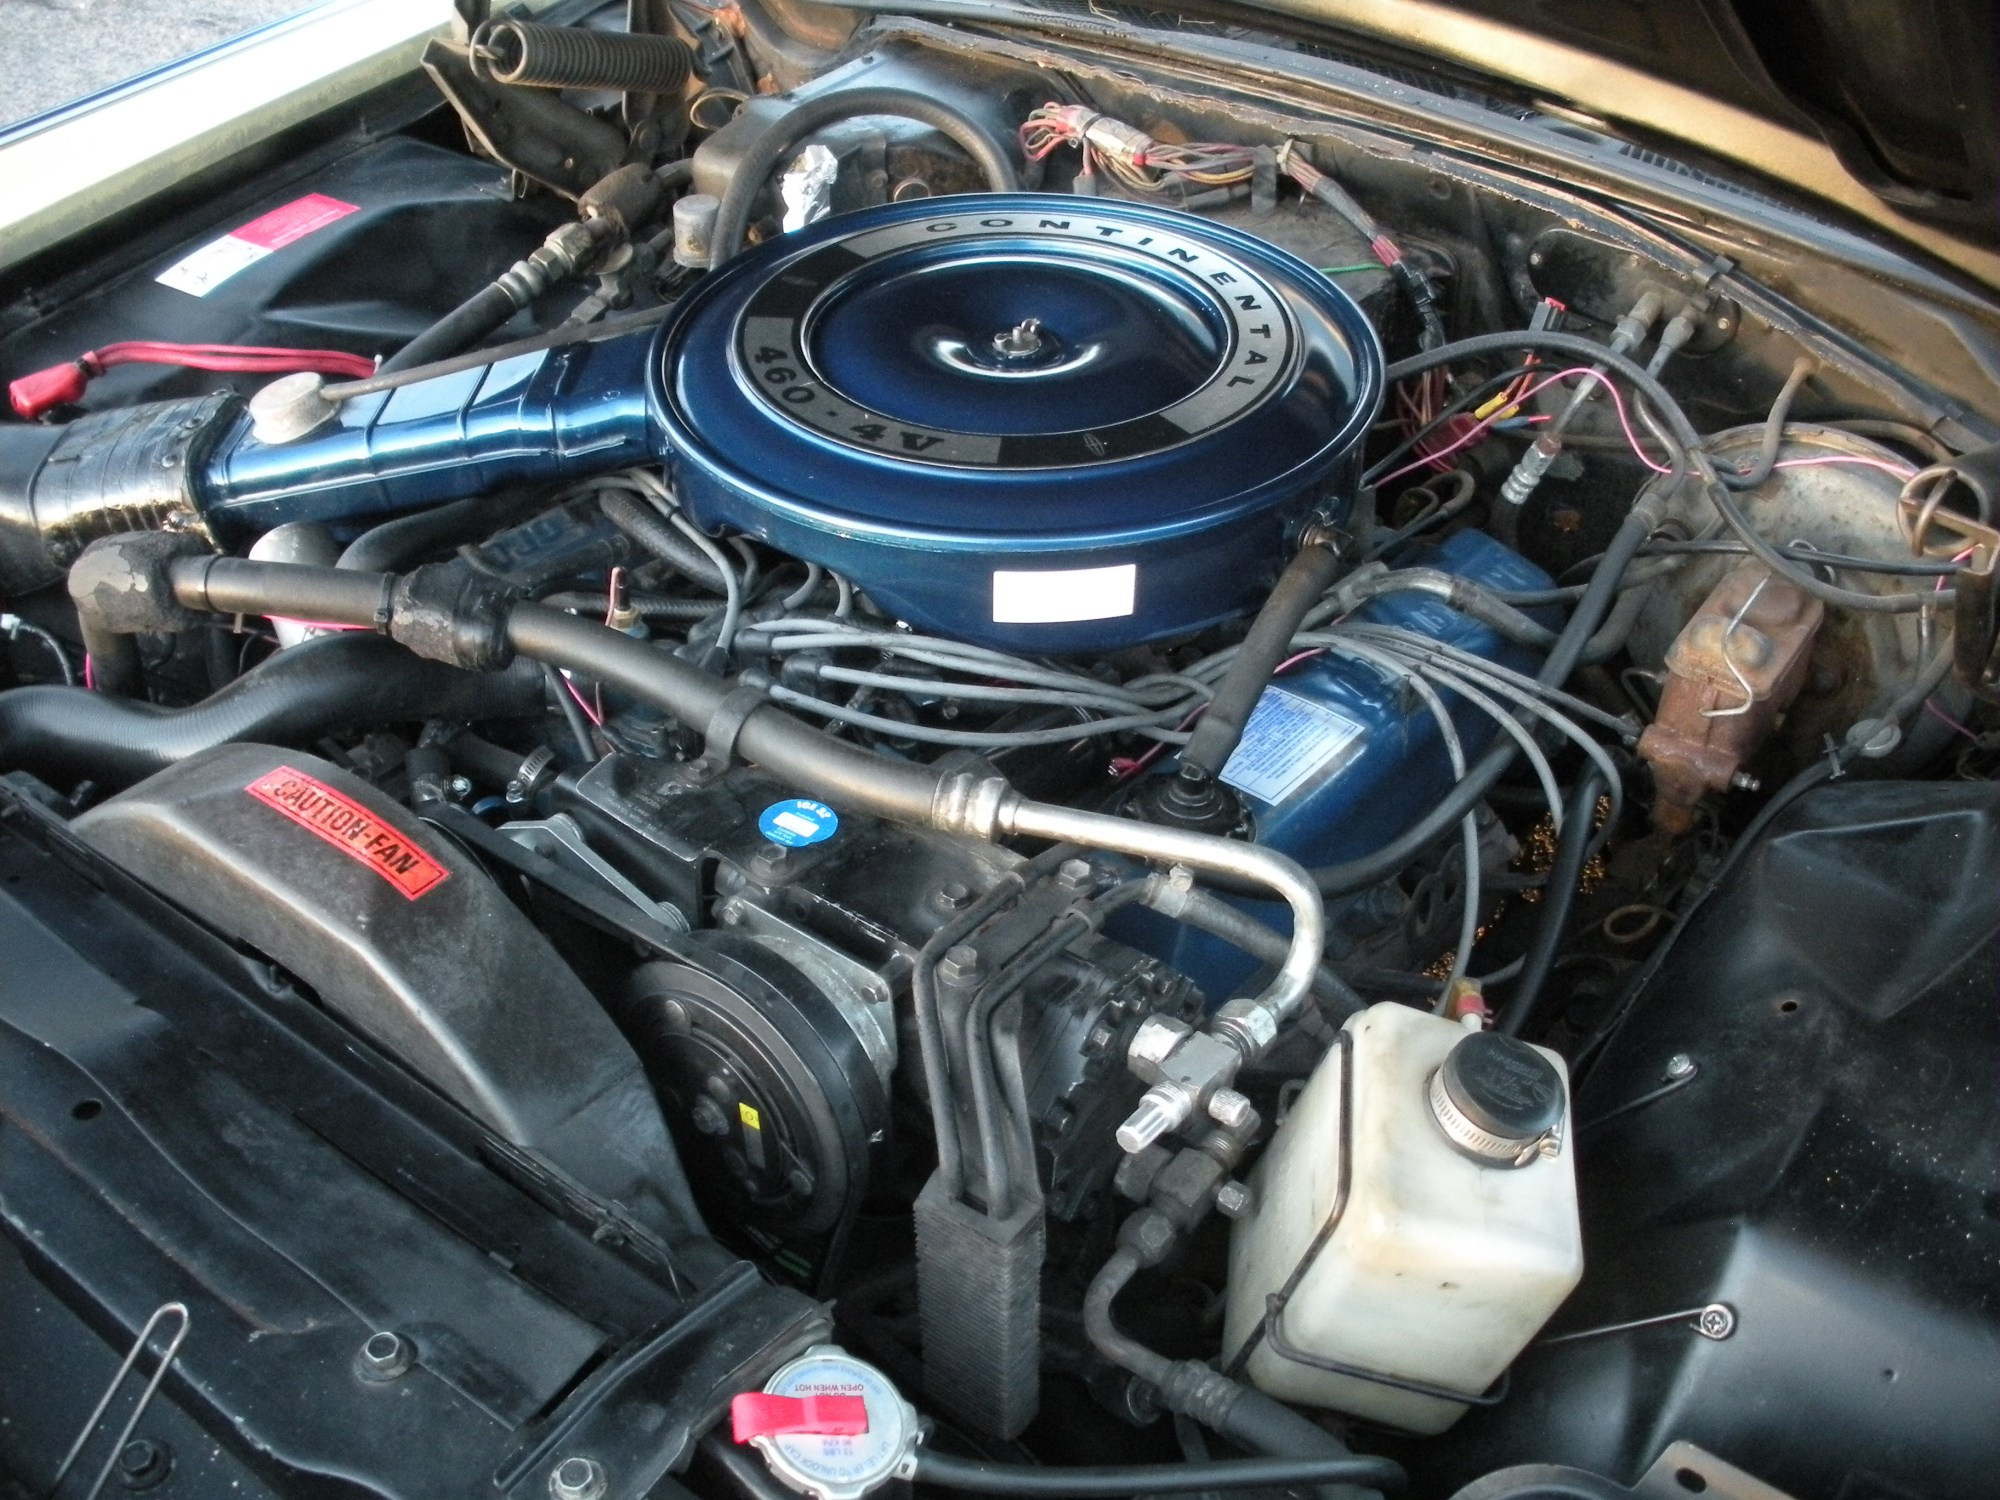 hight resolution of 1971 continental mark iii engine bay 460 v8